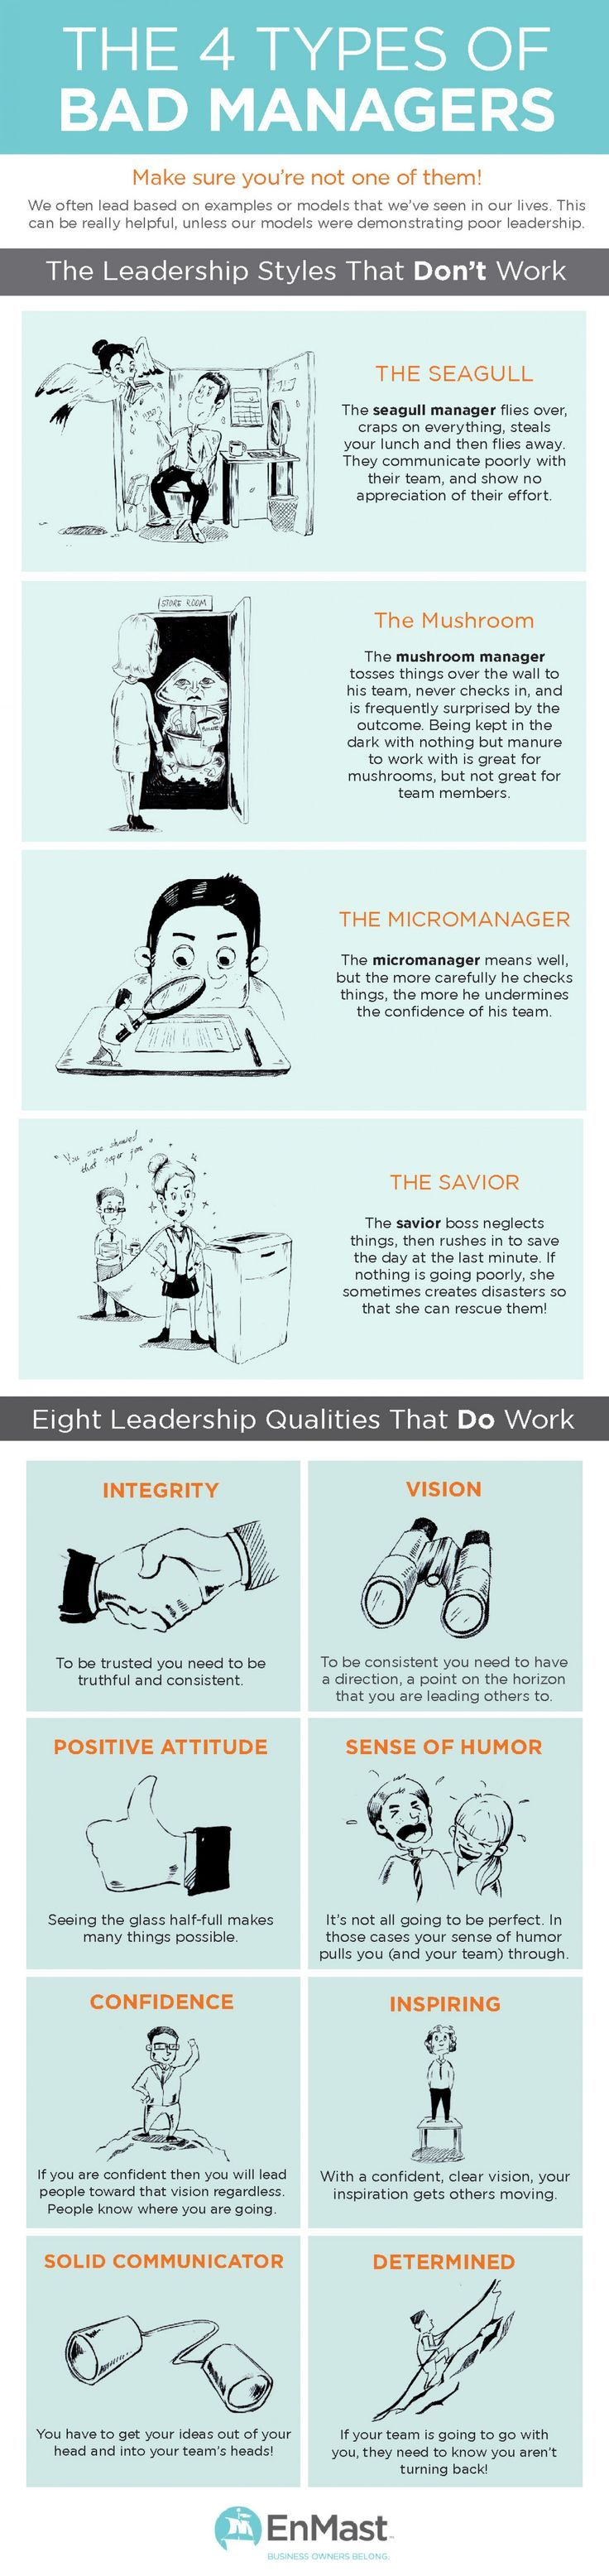 The 4 Types of Bad Managers---make sure you are following the right model ;)